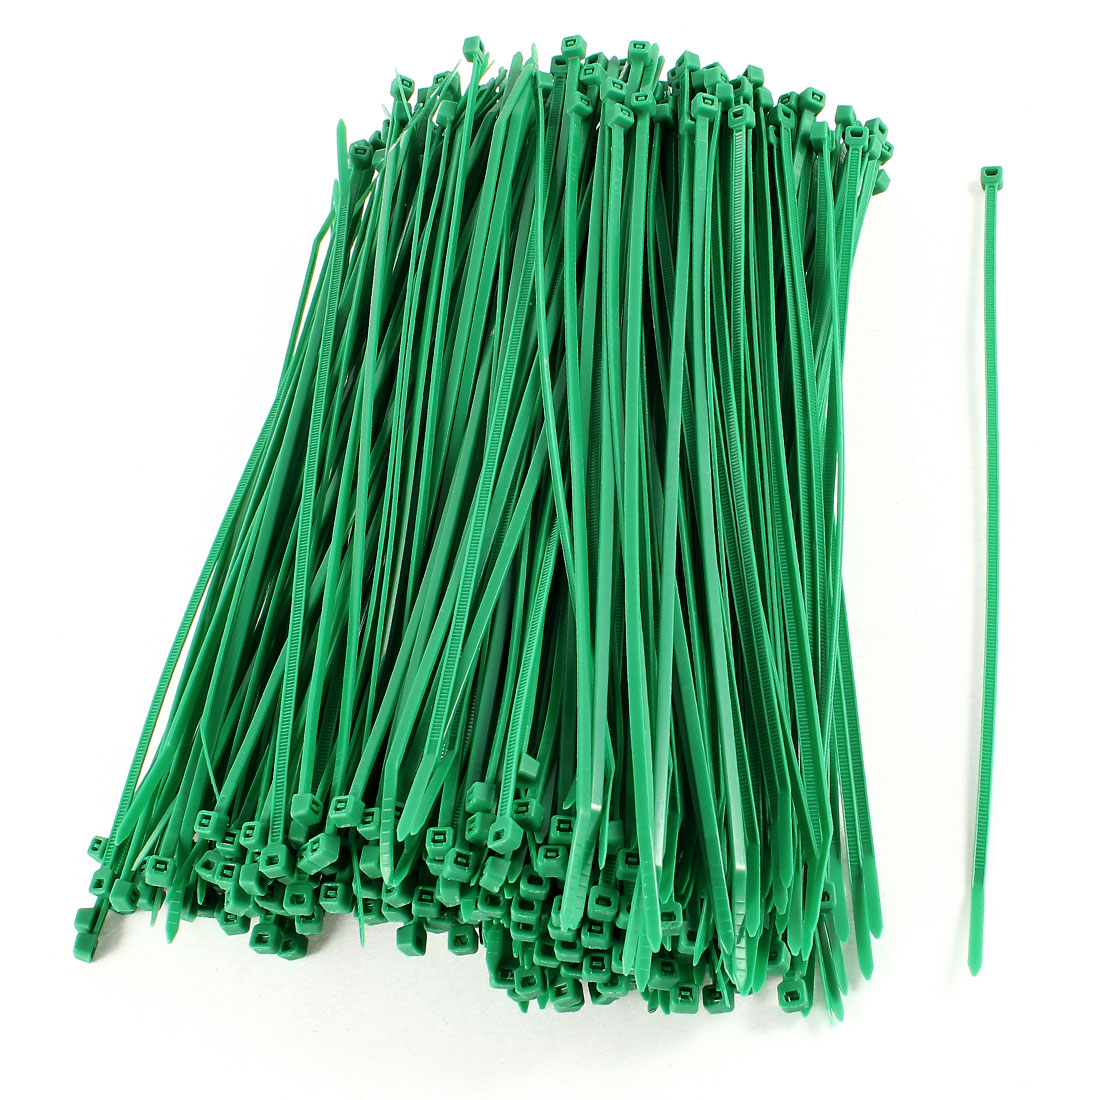 380 Pcs 4mm x 200mm Nylon Cable Wire Wrap Cord Zip Ties Straps Green